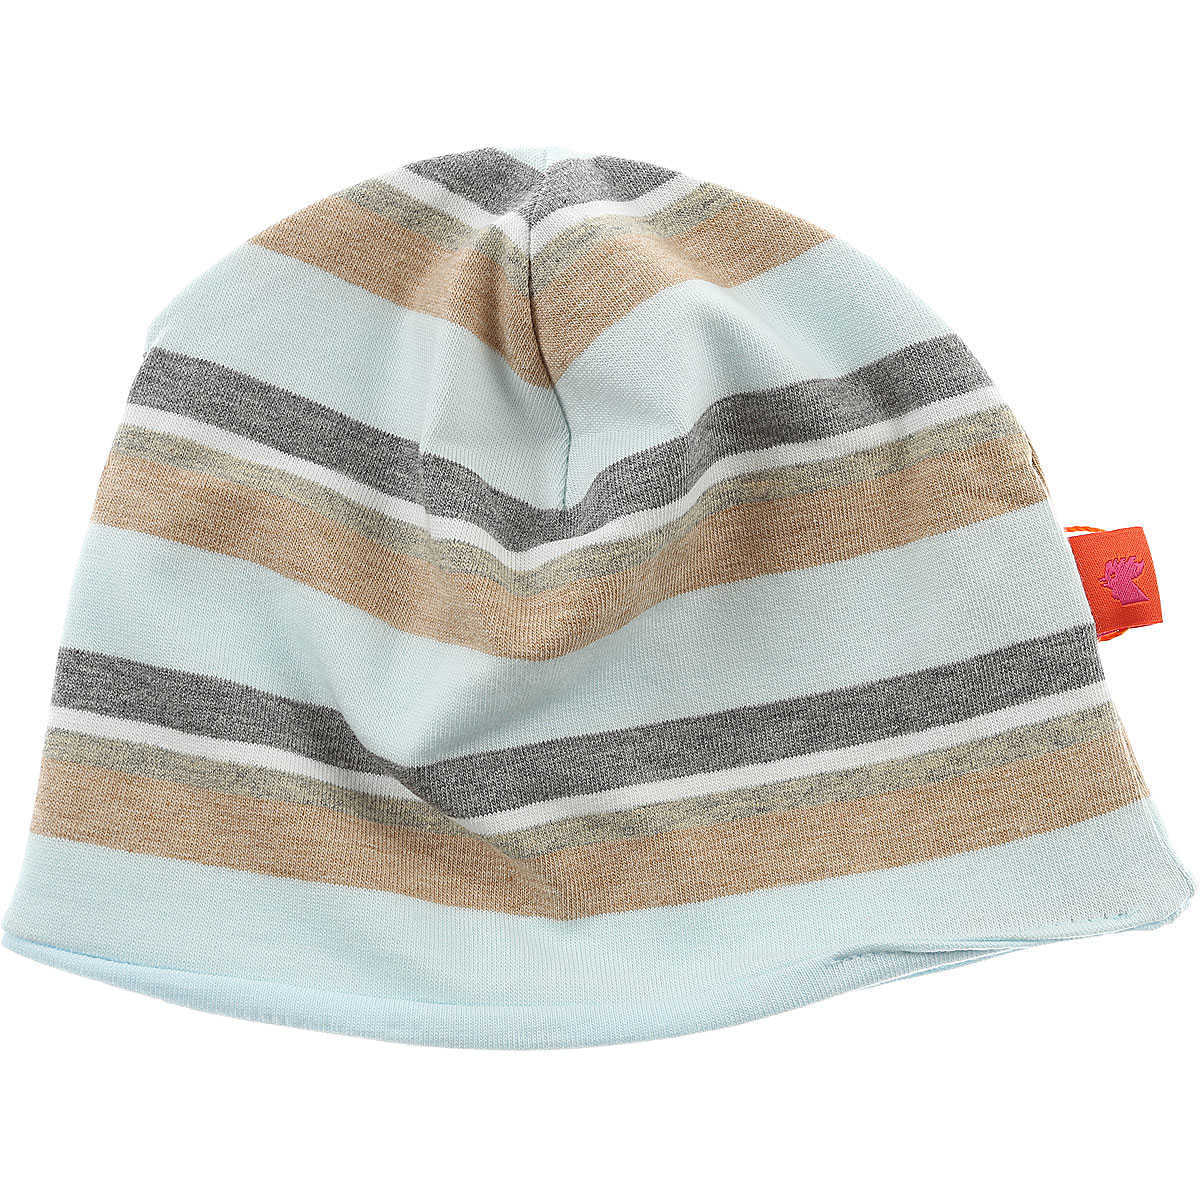 Gallo Baby Hats for Boys On Sale in Outlet Sky Blue UK - GOOFASH - Mens HATS